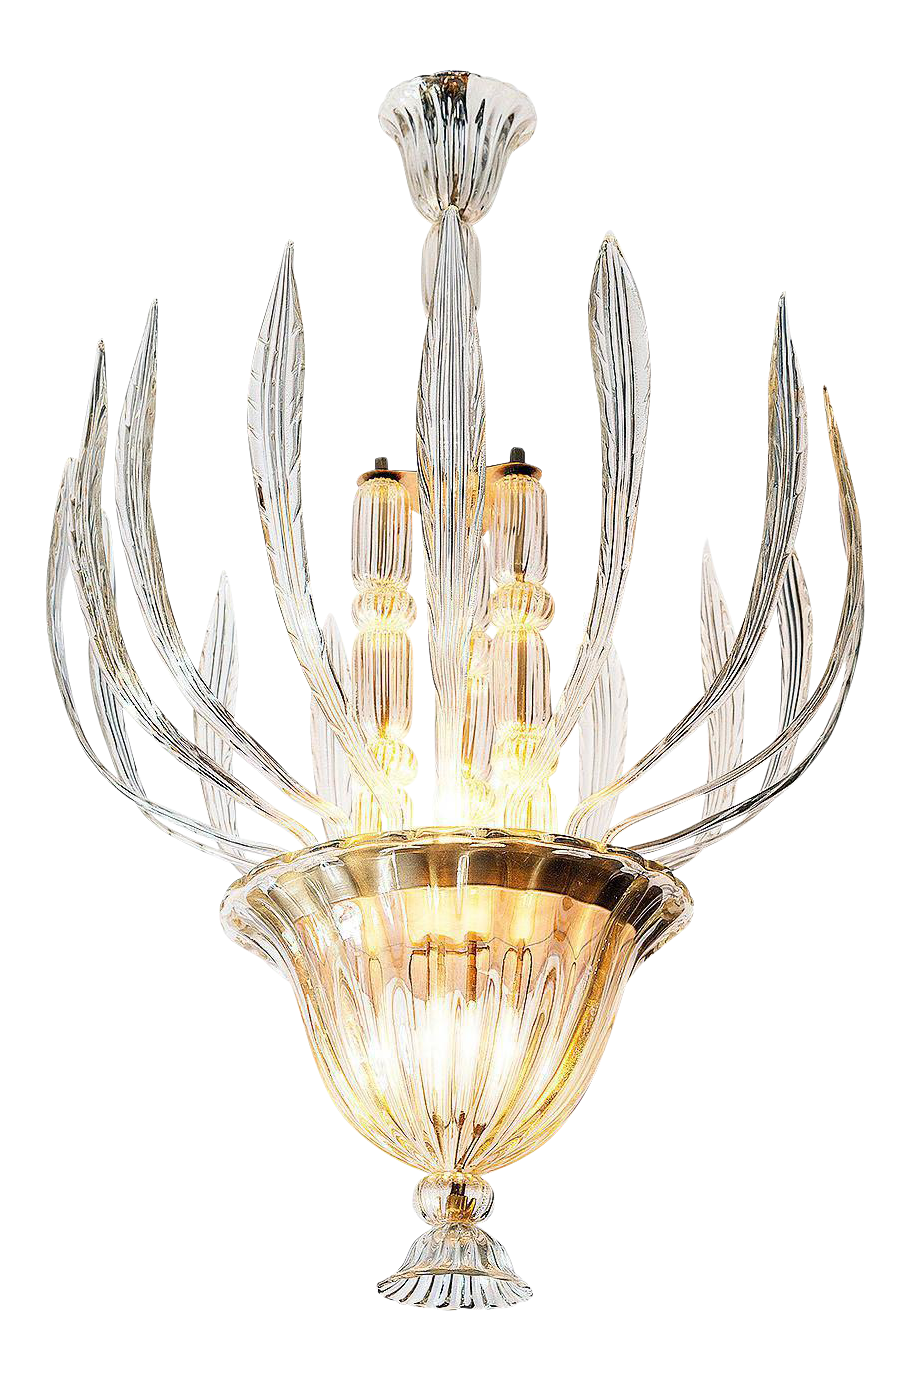 freeuse stock Modern png beautiful metheny. Chandelier clipart baroque.